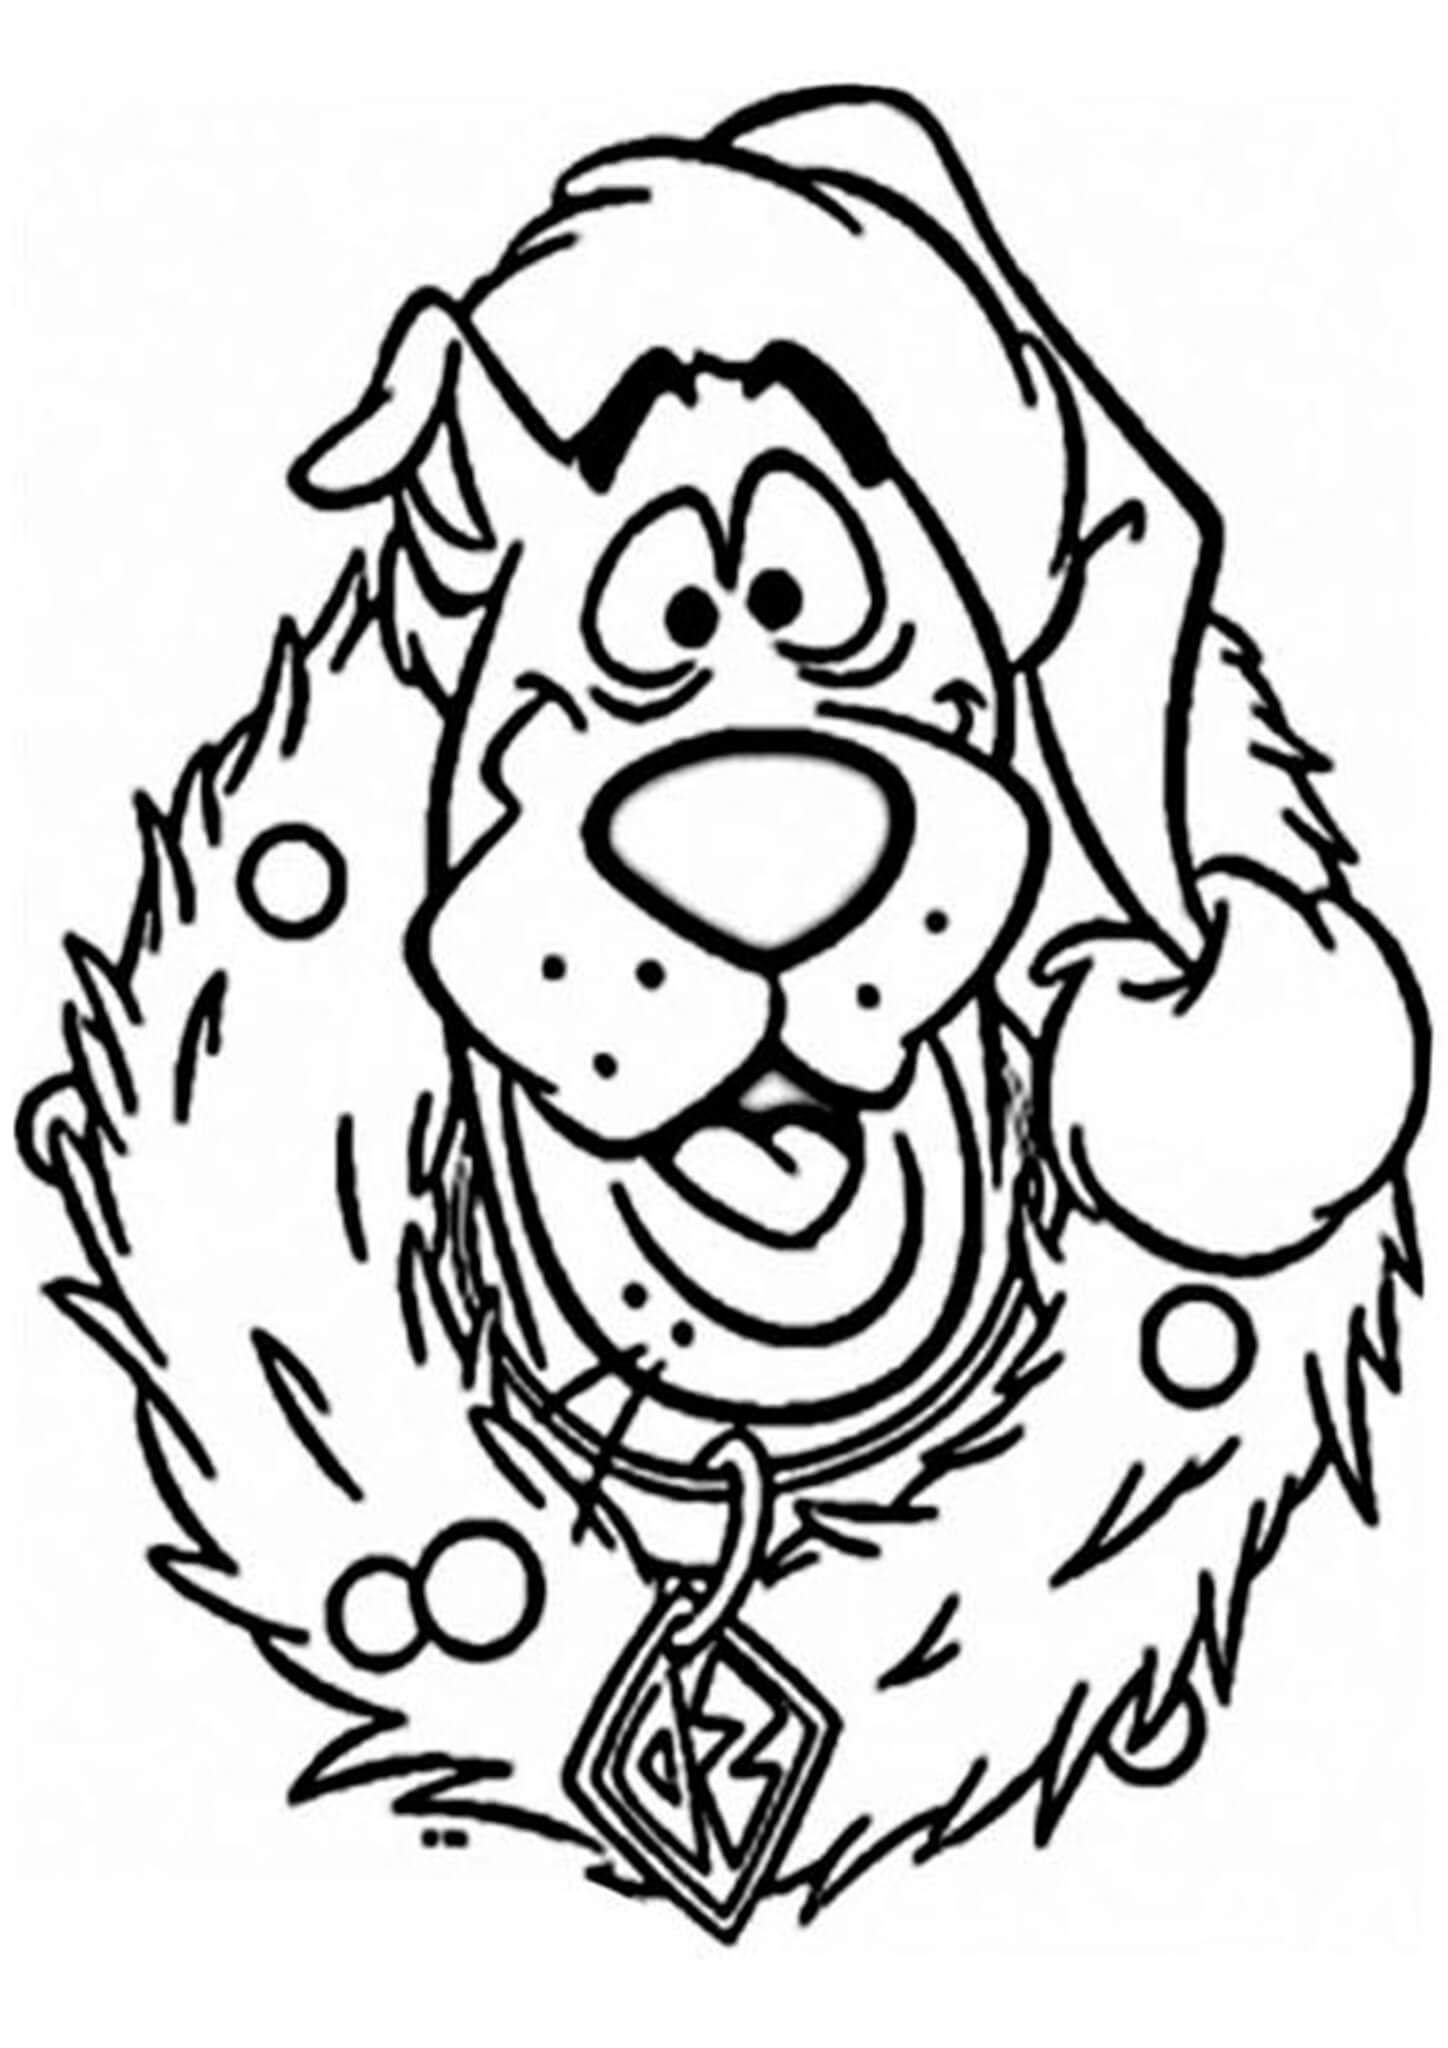 Free Easy To Print Scooby Doo Coloring Pages In 2020 Printable Christmas Coloring Pages Disney Coloring Pages Free Christmas Coloring Pages